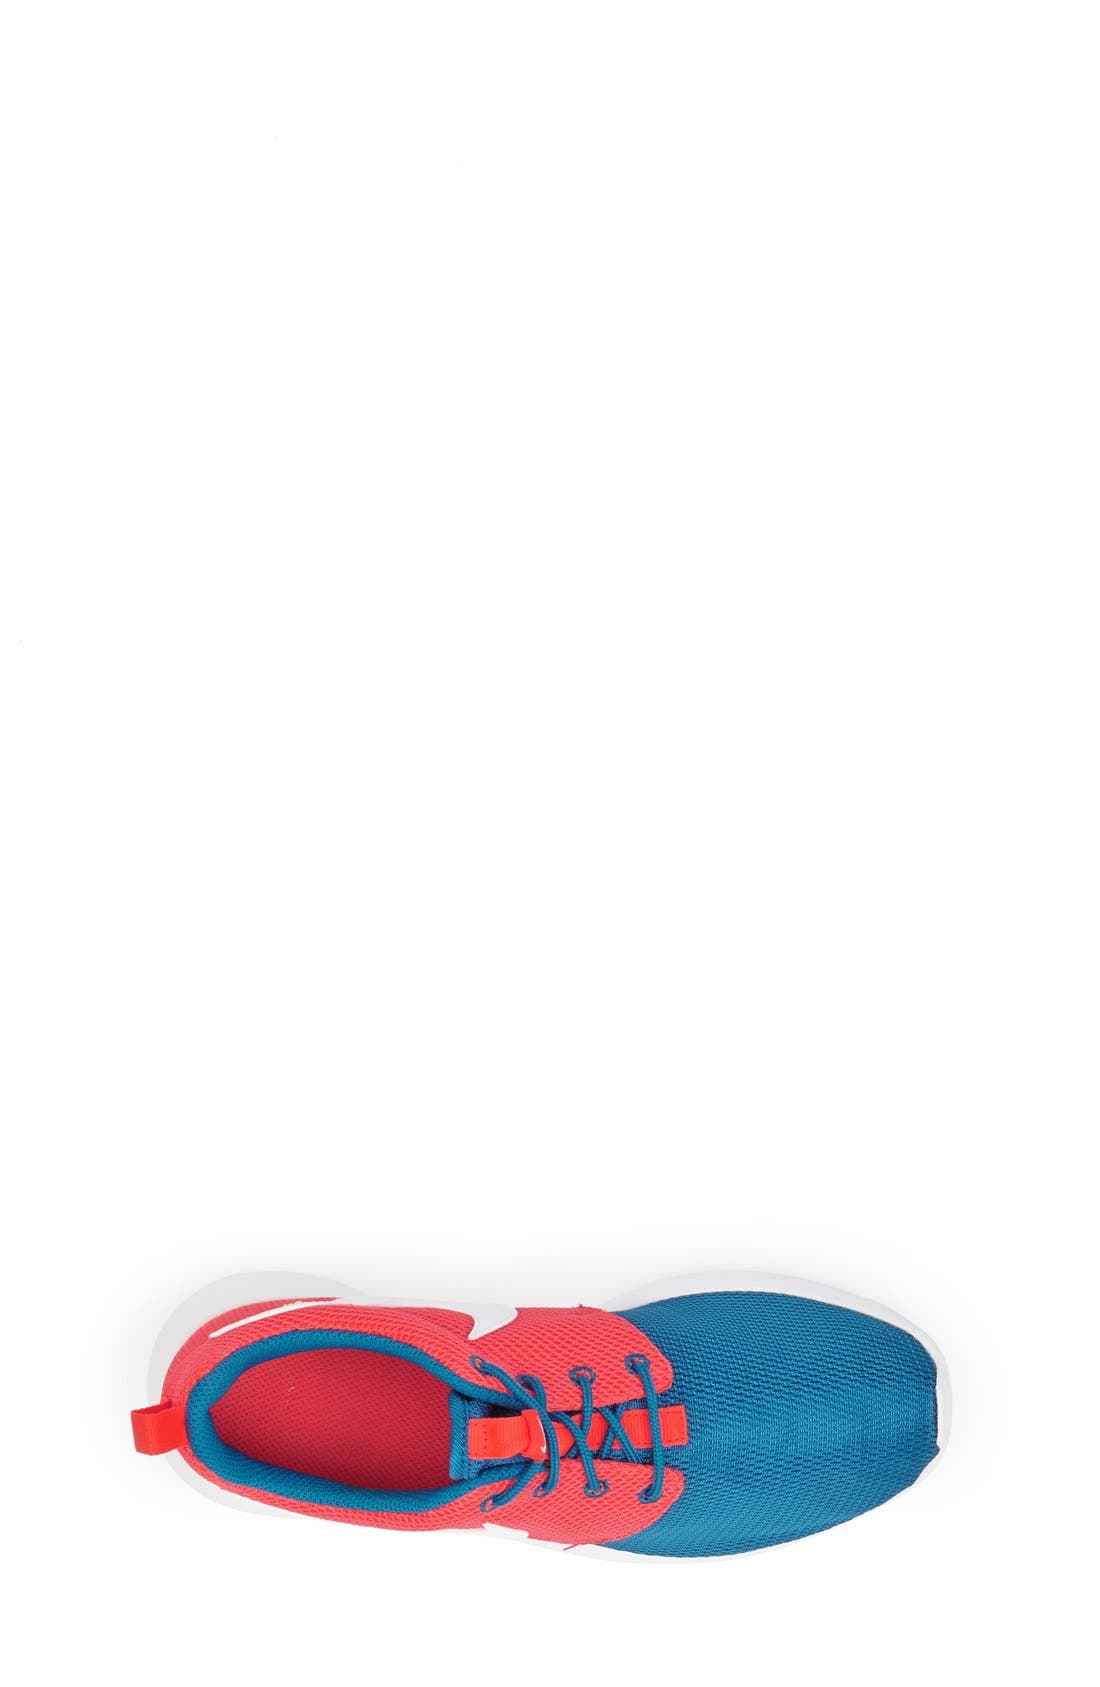 'Roshe Run' Sneaker,                             Alternate thumbnail 130, color,